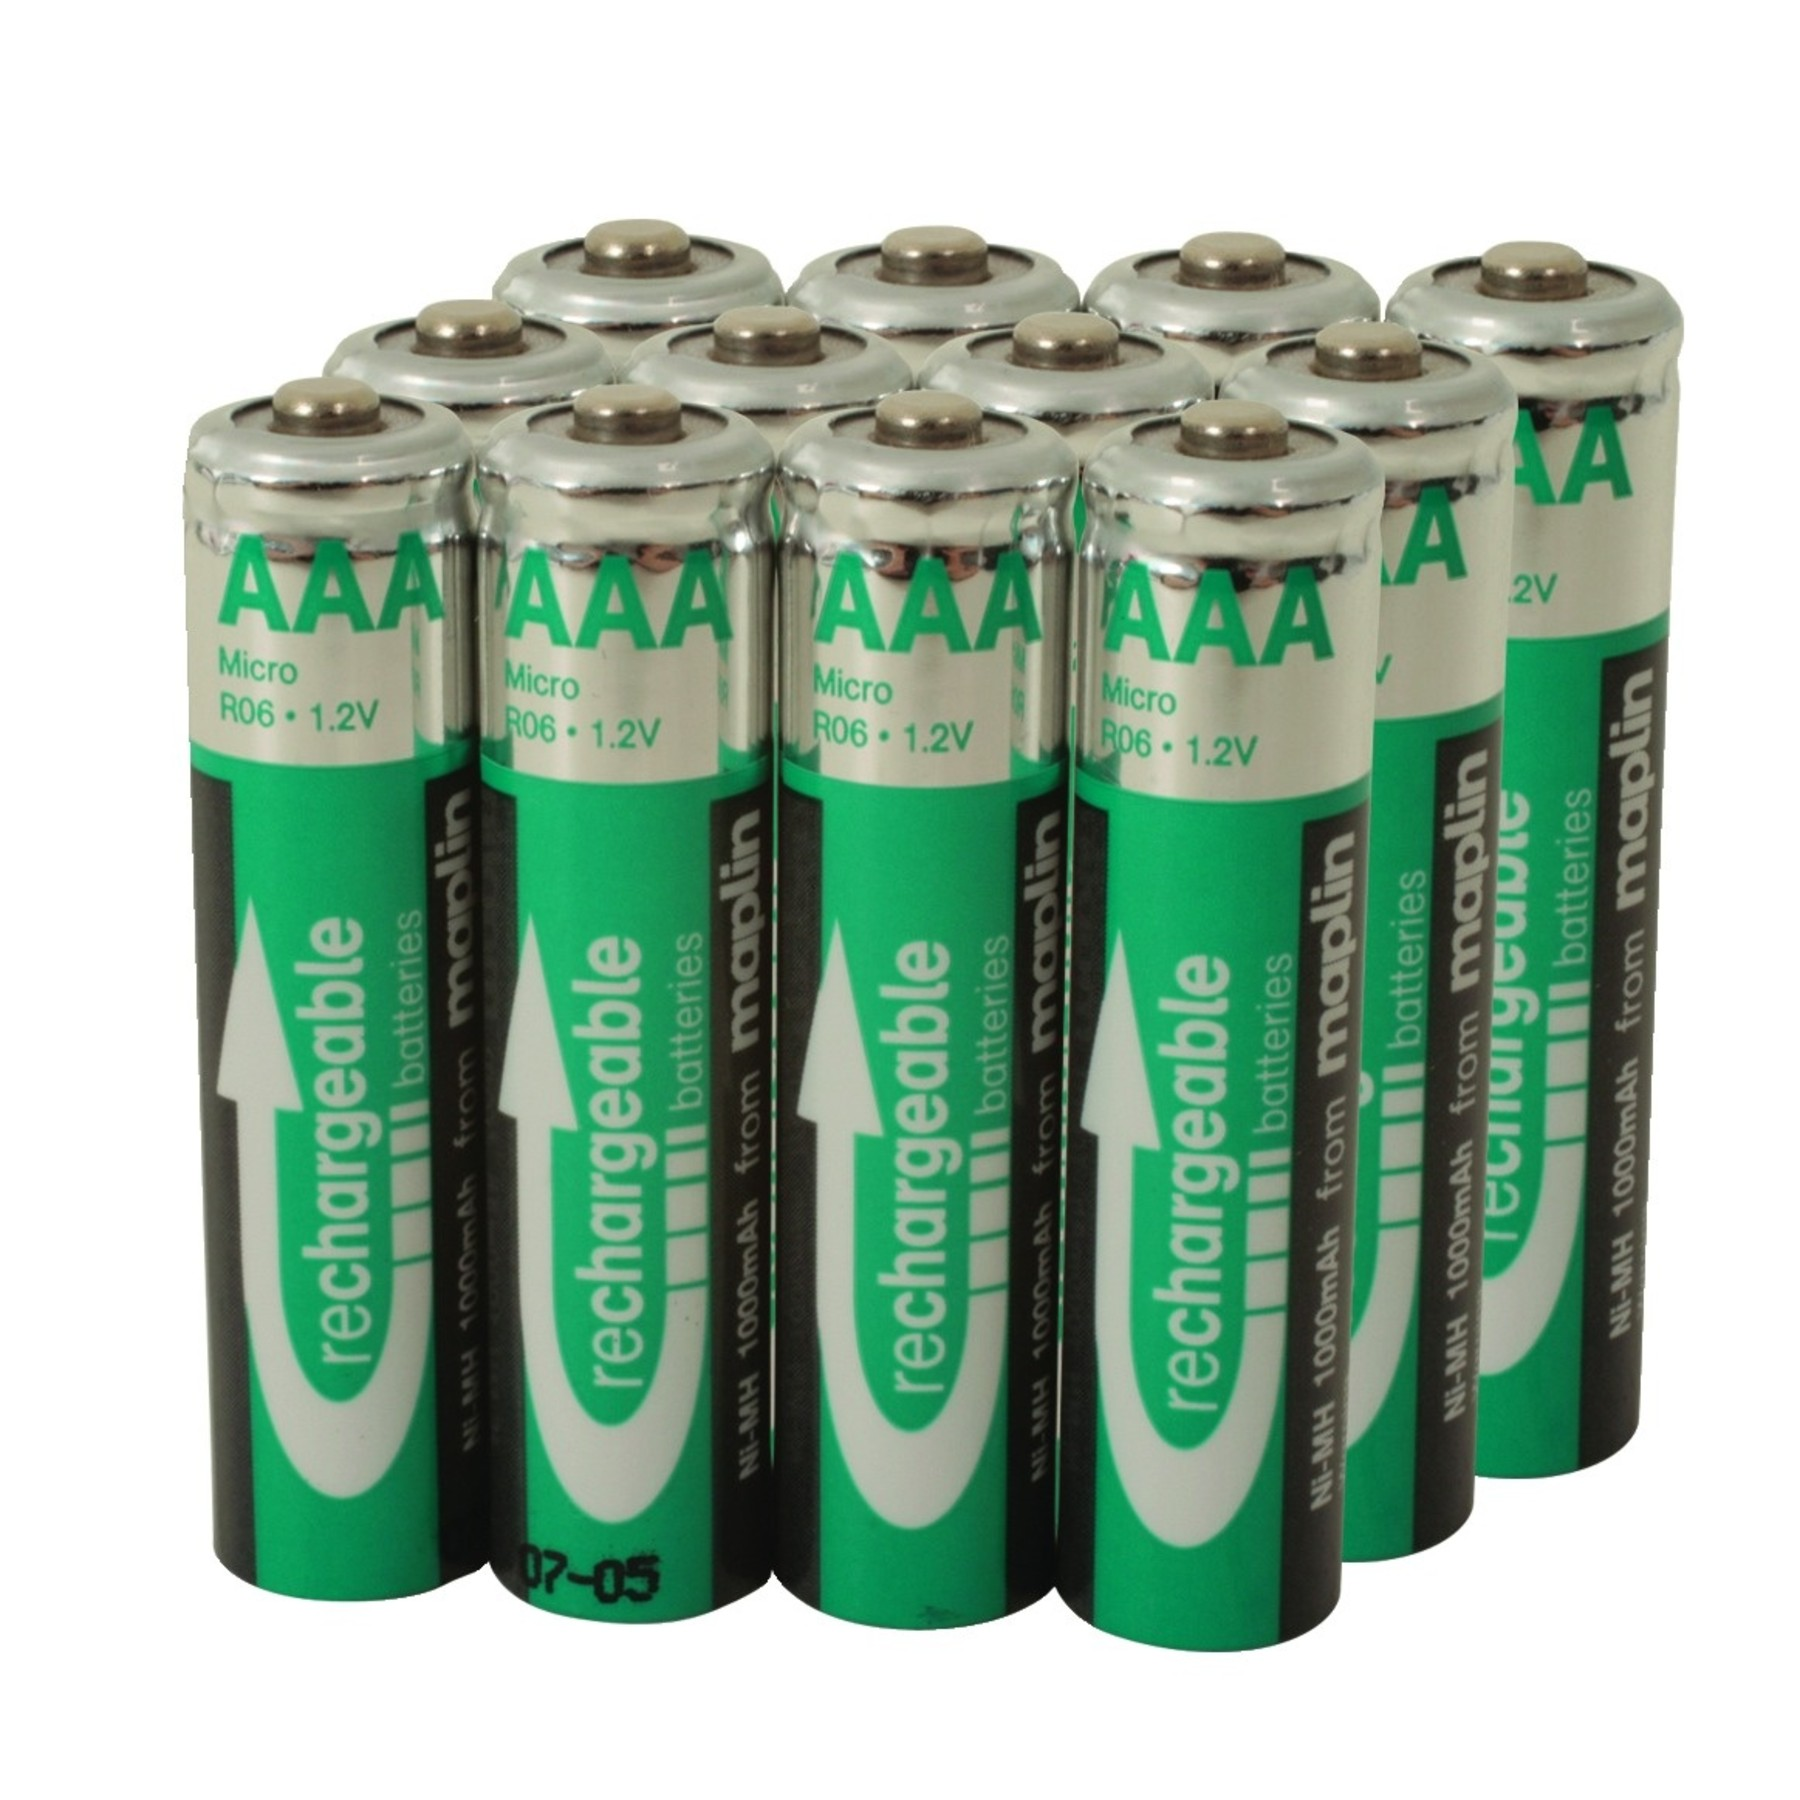 Popular Rechargeable Batteries Pack Auto Electrical Wiring Diagram Bay 9 Volt Smart Battery Charger 8 X 300 Mah Accupower Nimh 12 Aaa 1000mah Value 1000